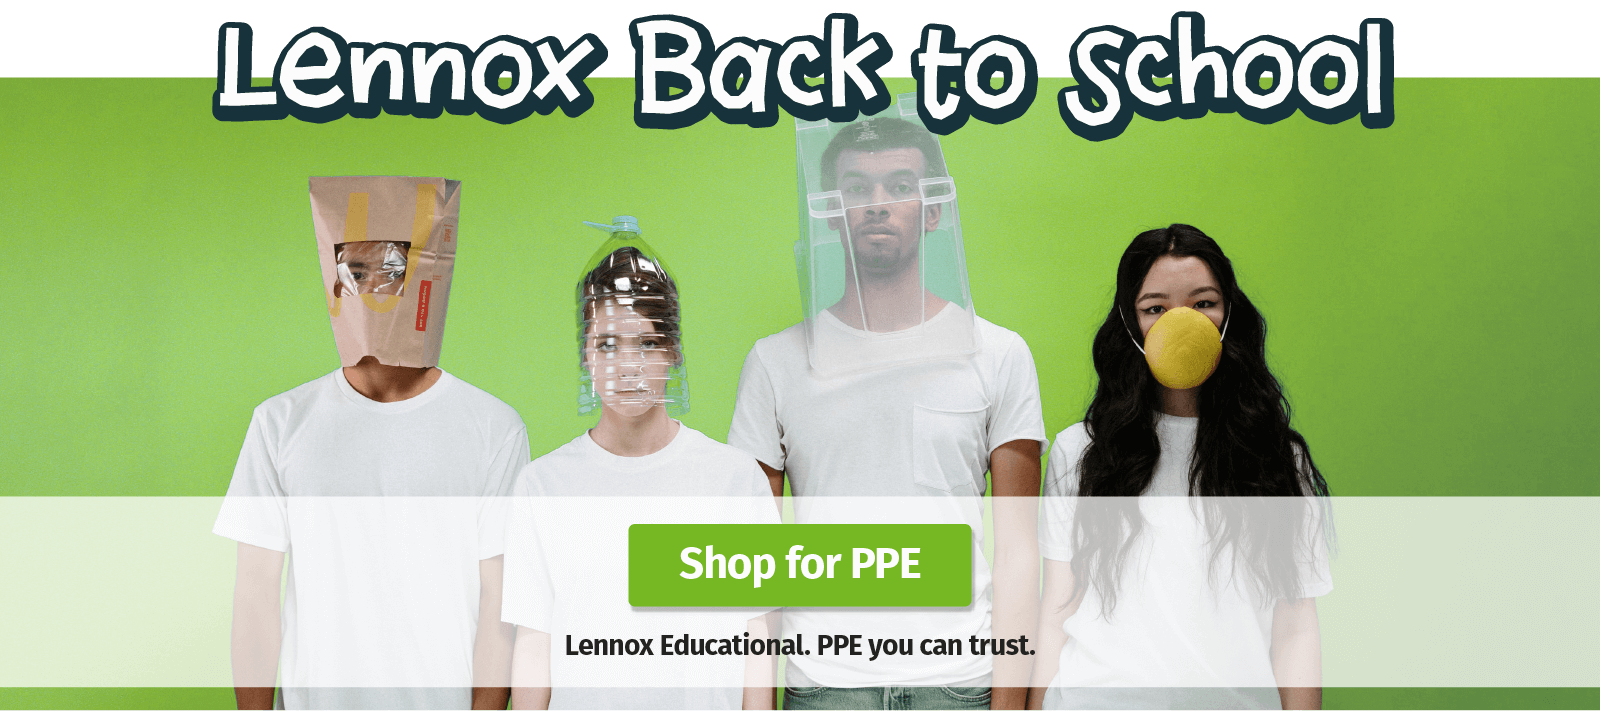 New-Lennox-Back-to-School-Banner-2